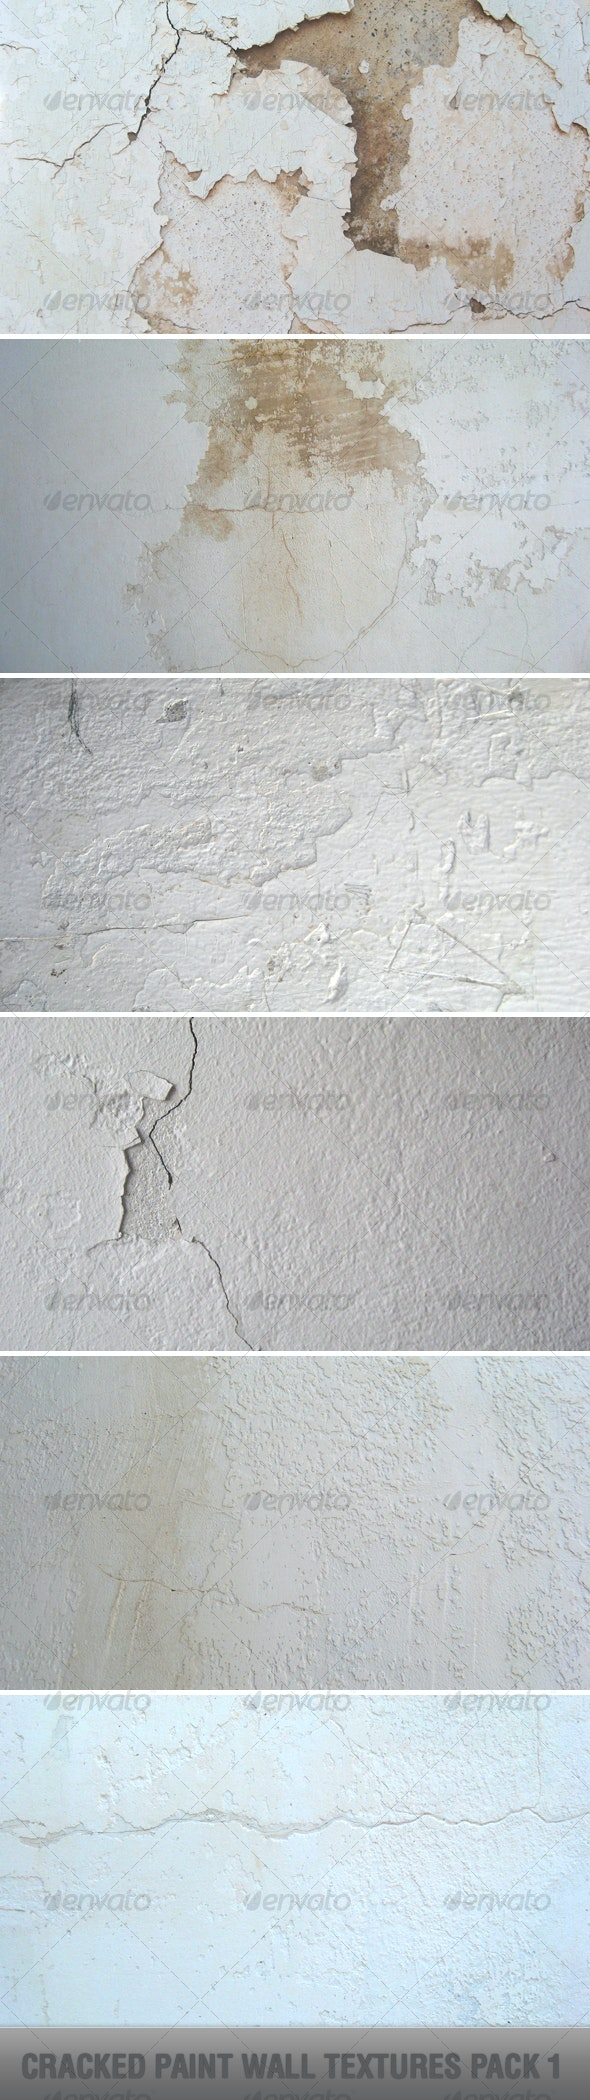 Cracked Paint Wall Textures Pack 1 - Industrial / Grunge Textures